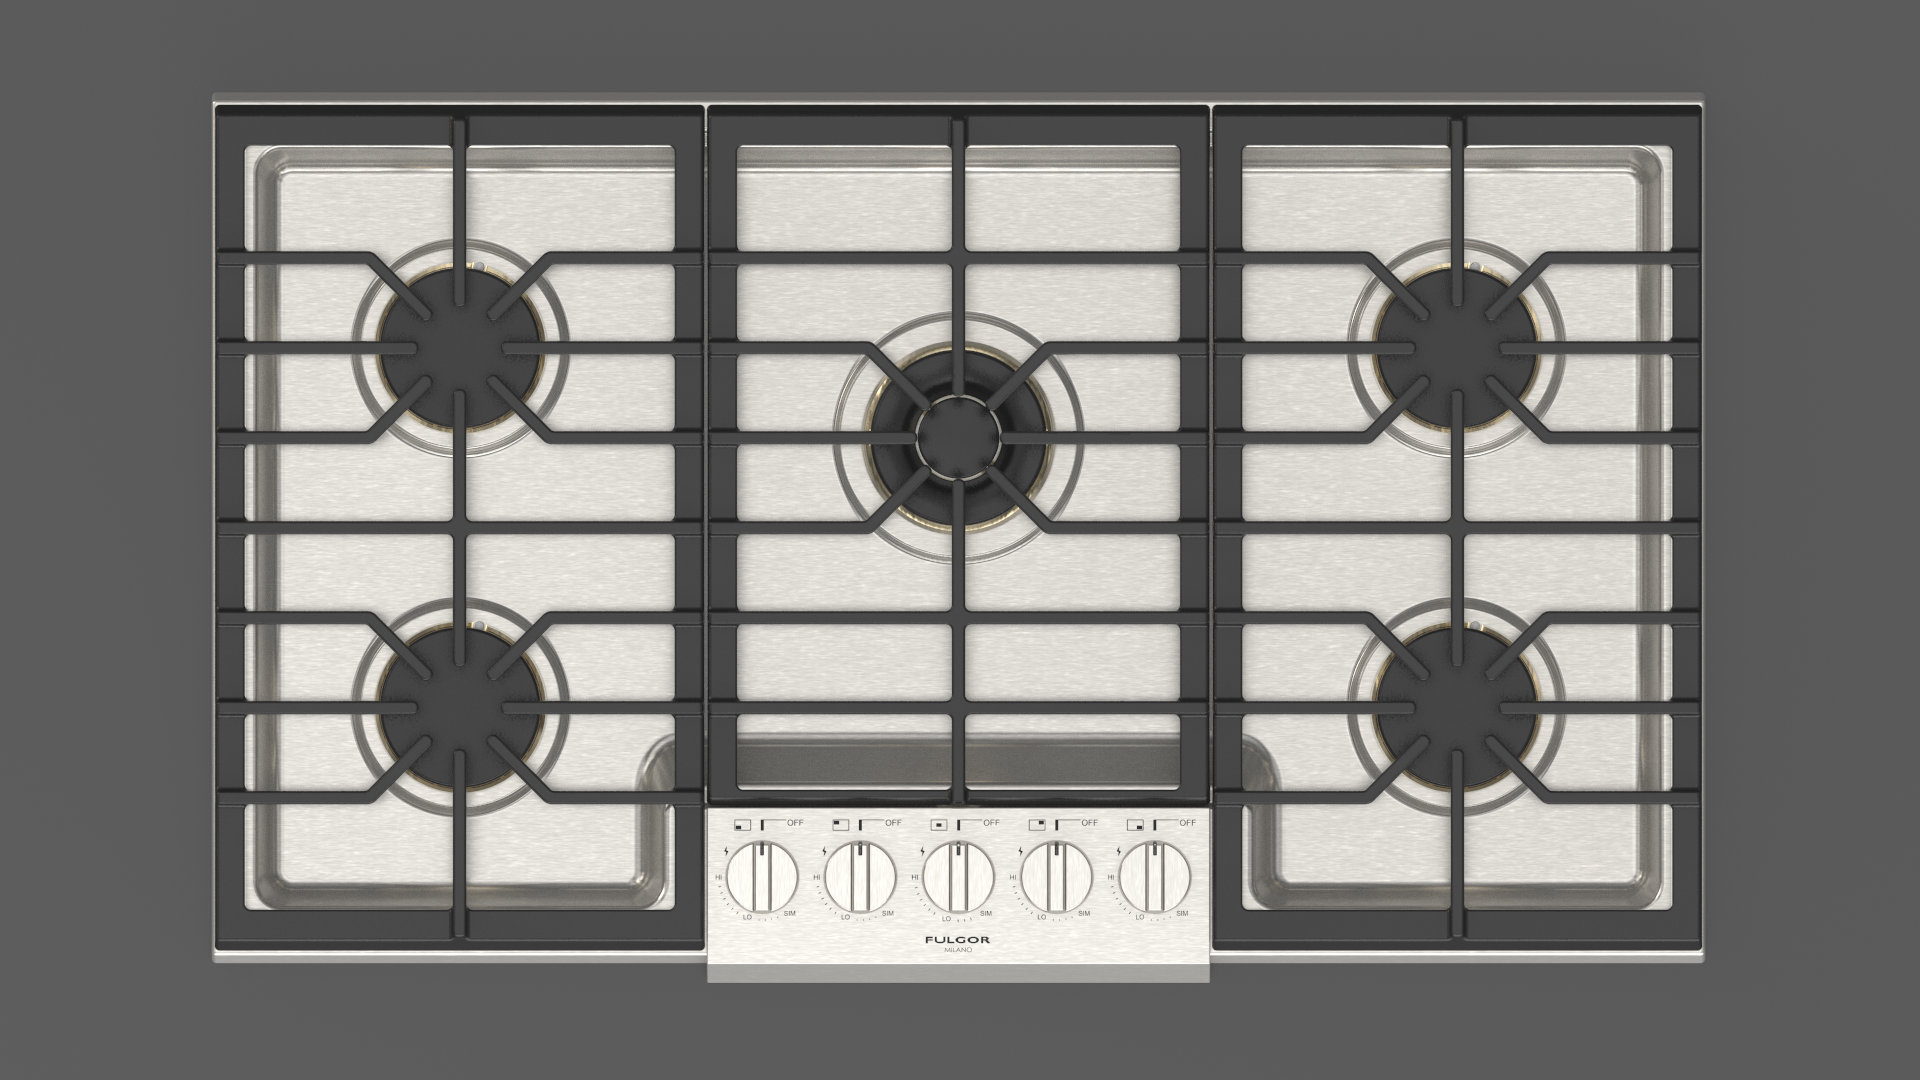 FULGOR Cooktop 36inch in Stainless Steel color showcased by Corbeil Electro Store